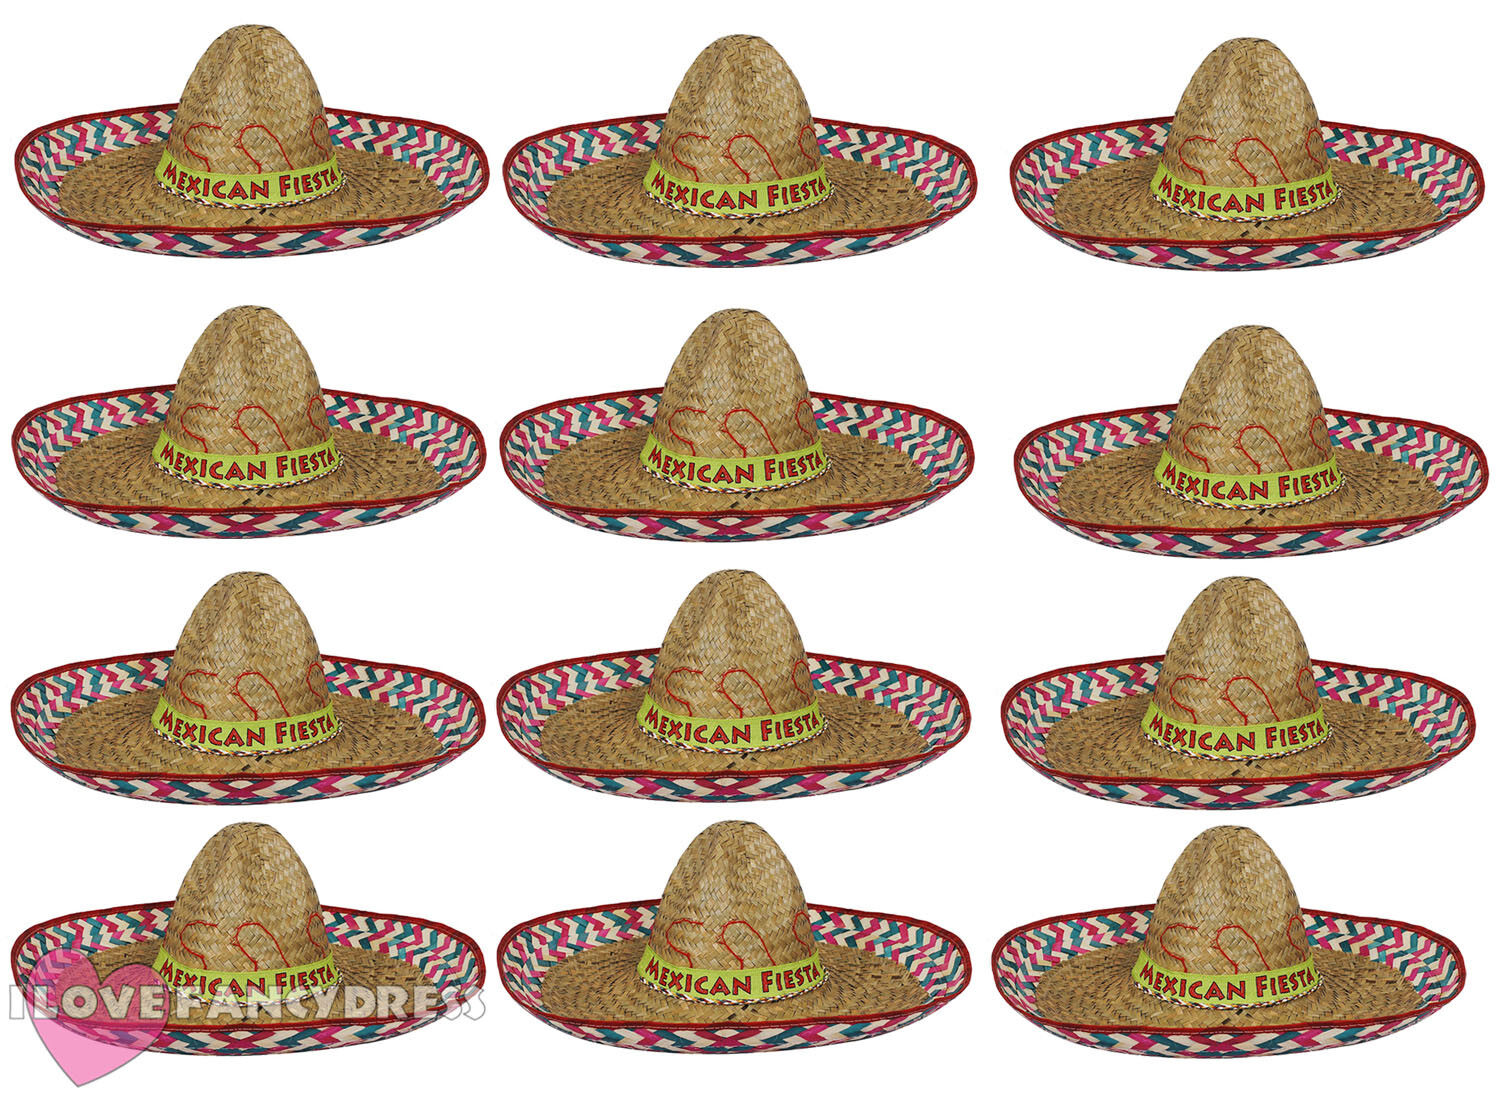 437a568b589 Details about PACK OF 12 MEXICAN FIESTA SOMBRERO HAT WILD WEST FANCY DRESS  COSTUME ACCESSORY